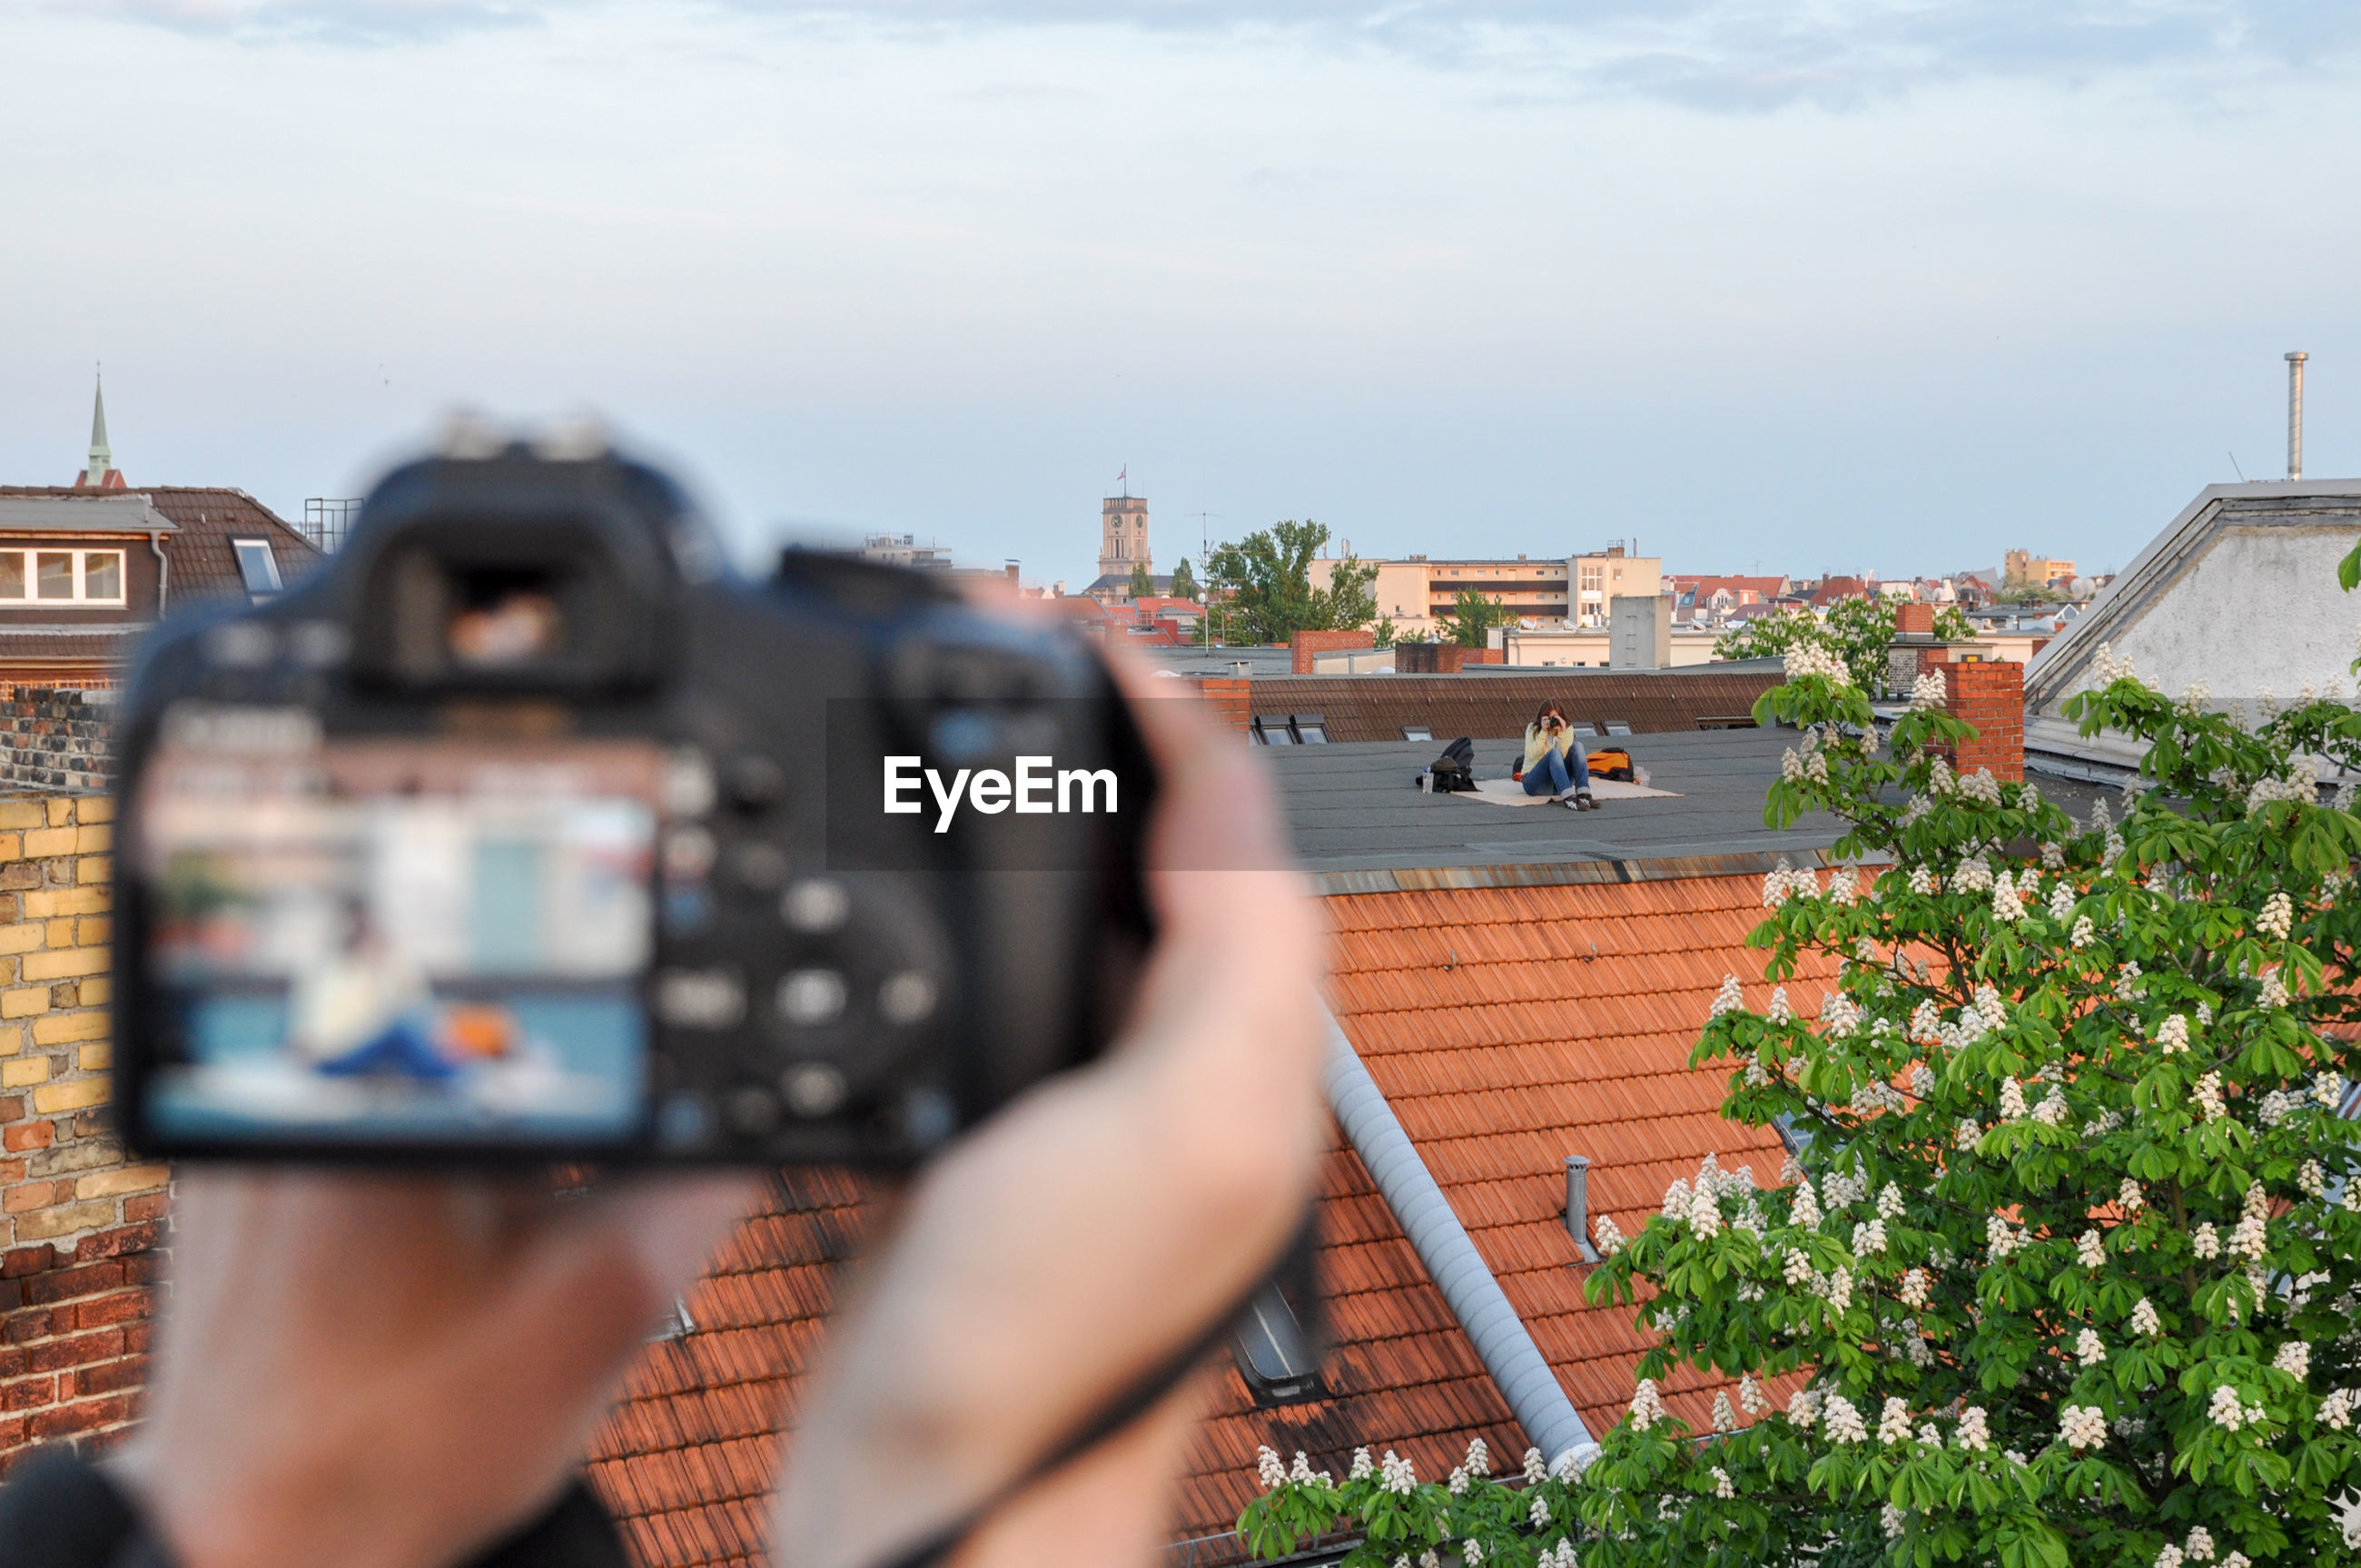 Cropped image of person photographing woman sitting on building terrace in city against sky